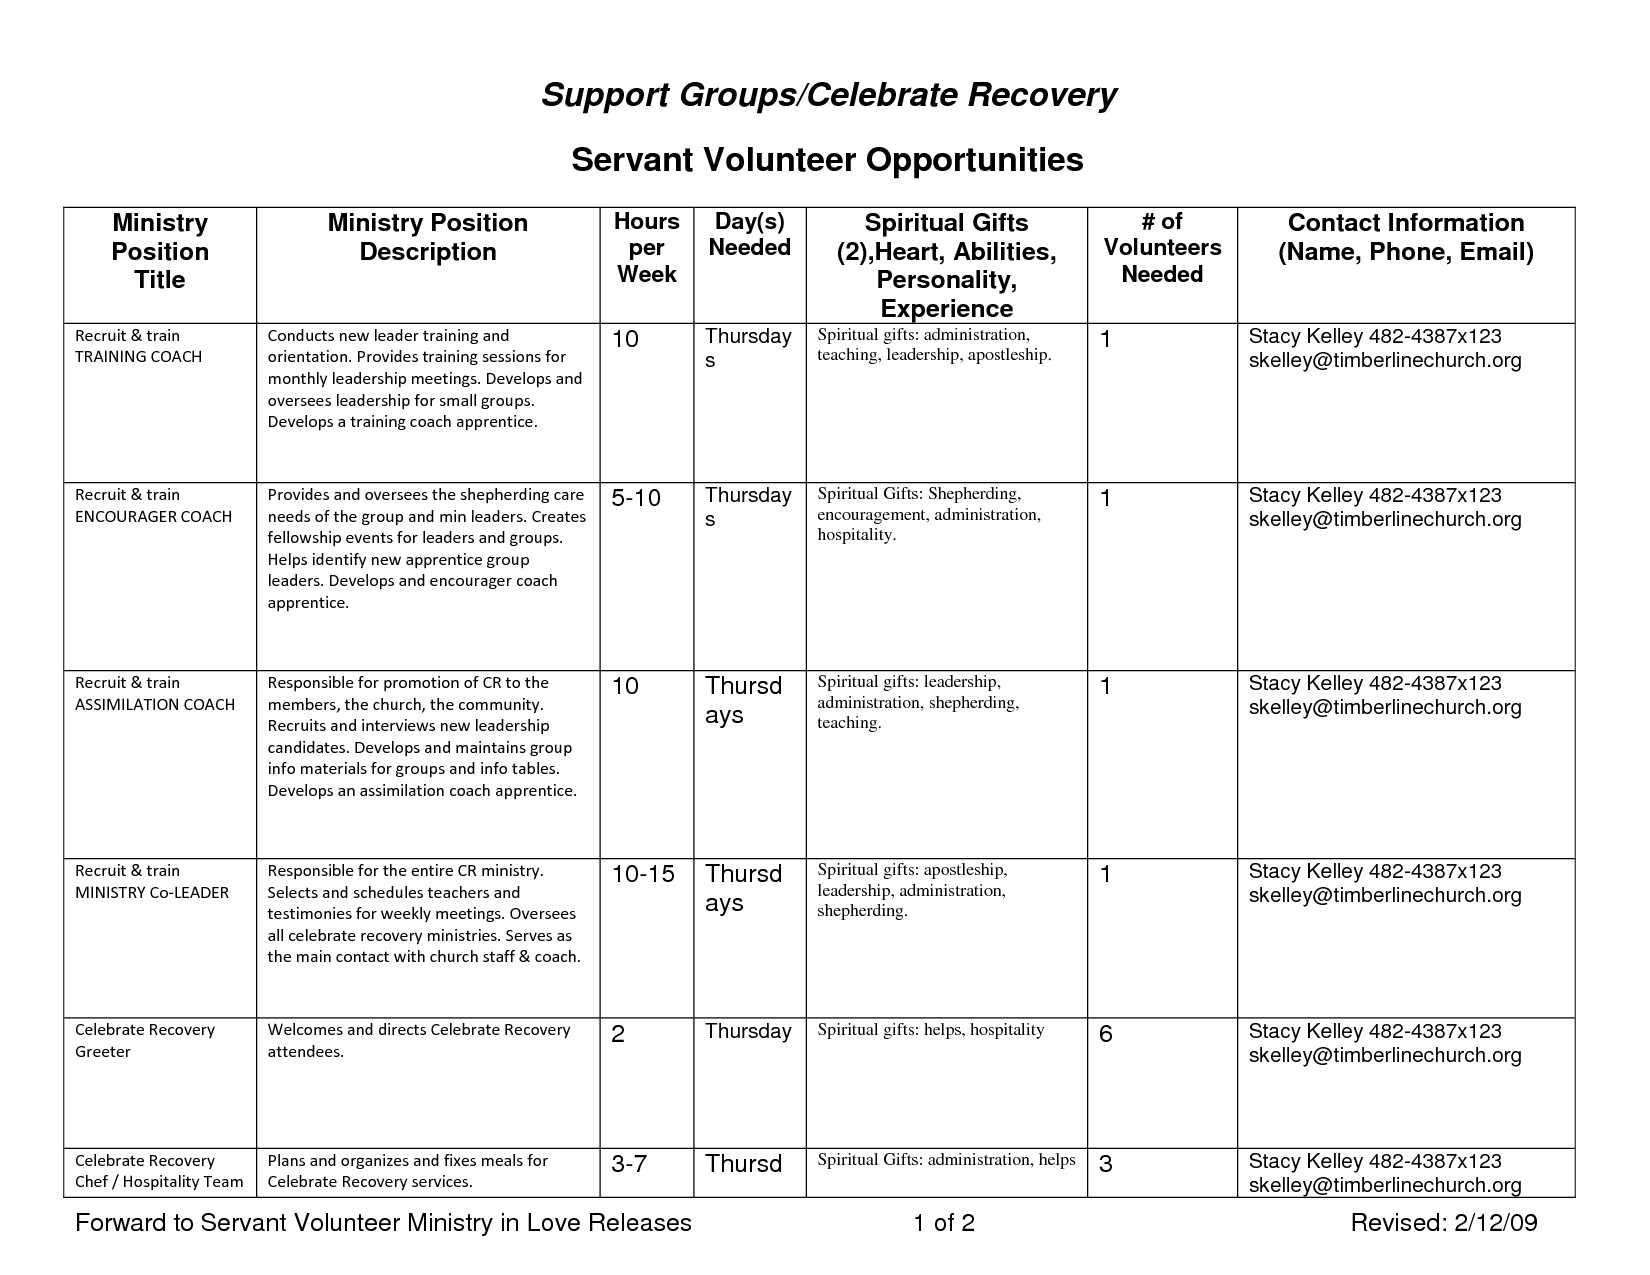 Celebrate Recovery Inventory Worksheet Images